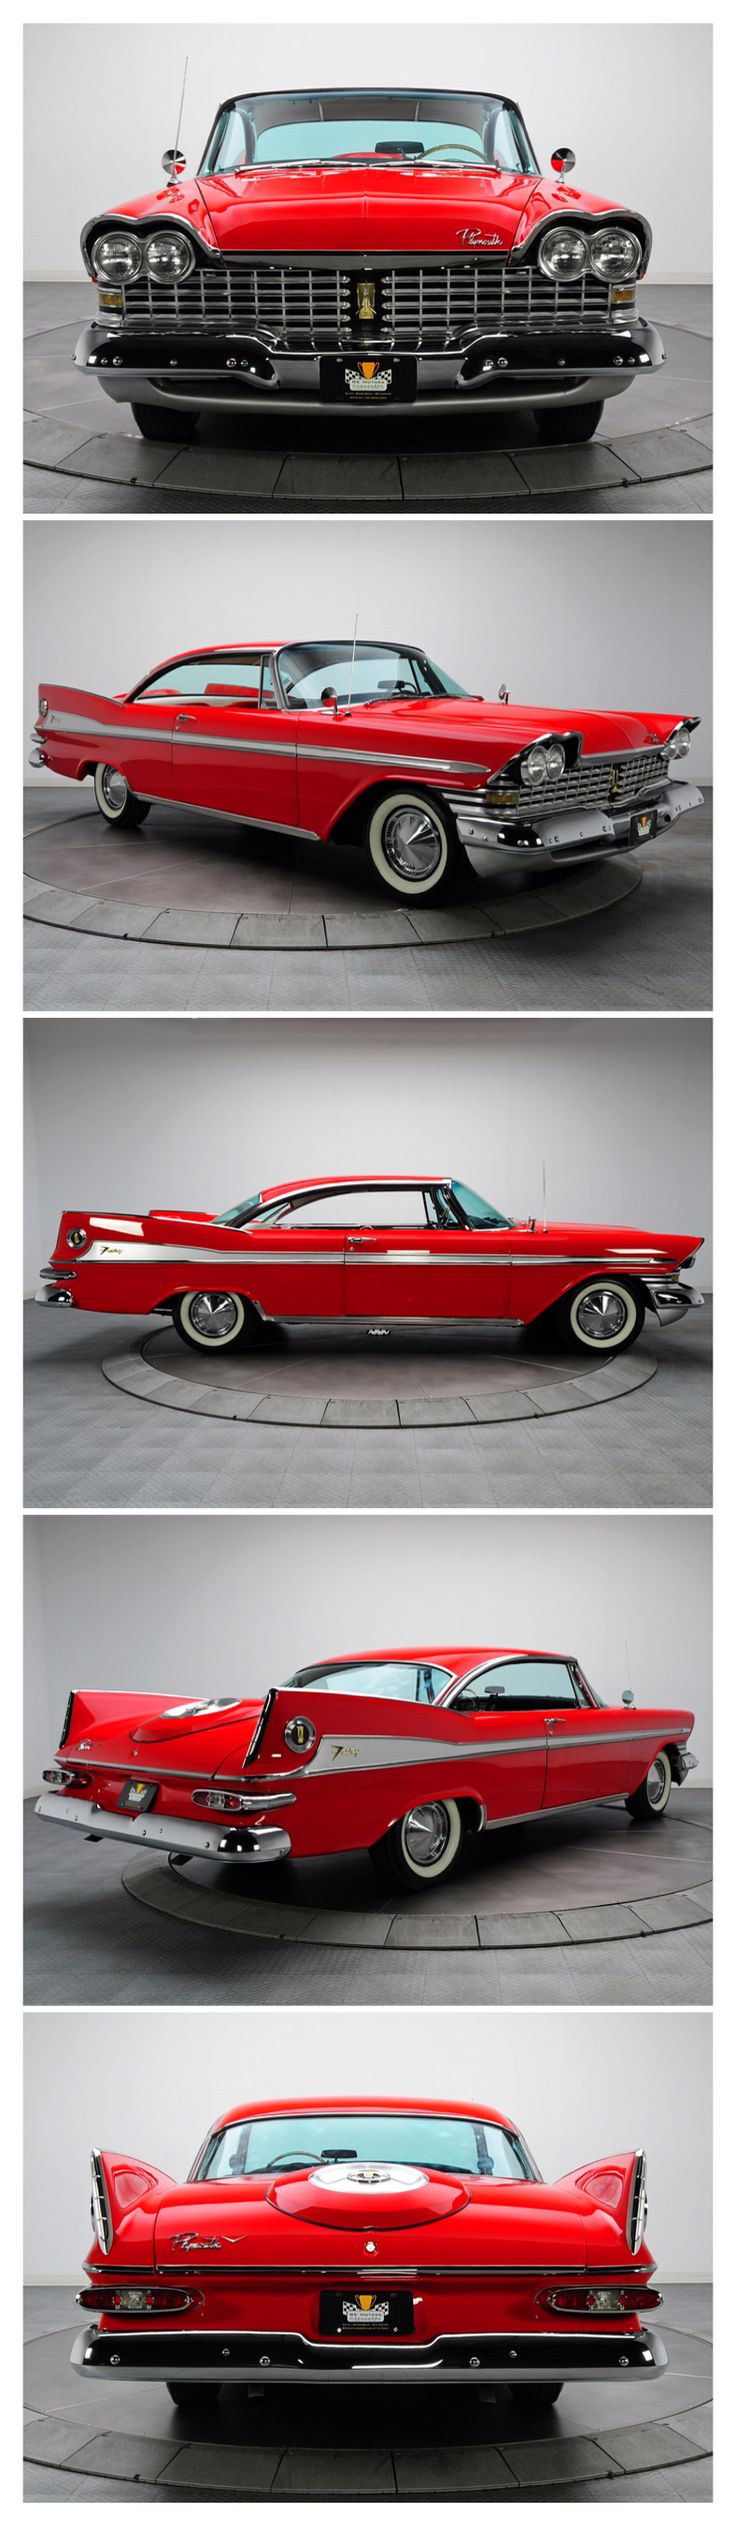 1959 Plymouth Sport Fury...Re-pin Brought to you by agents at #HouseofInsurance in #EugeneOregon for #LowCostInsurance.